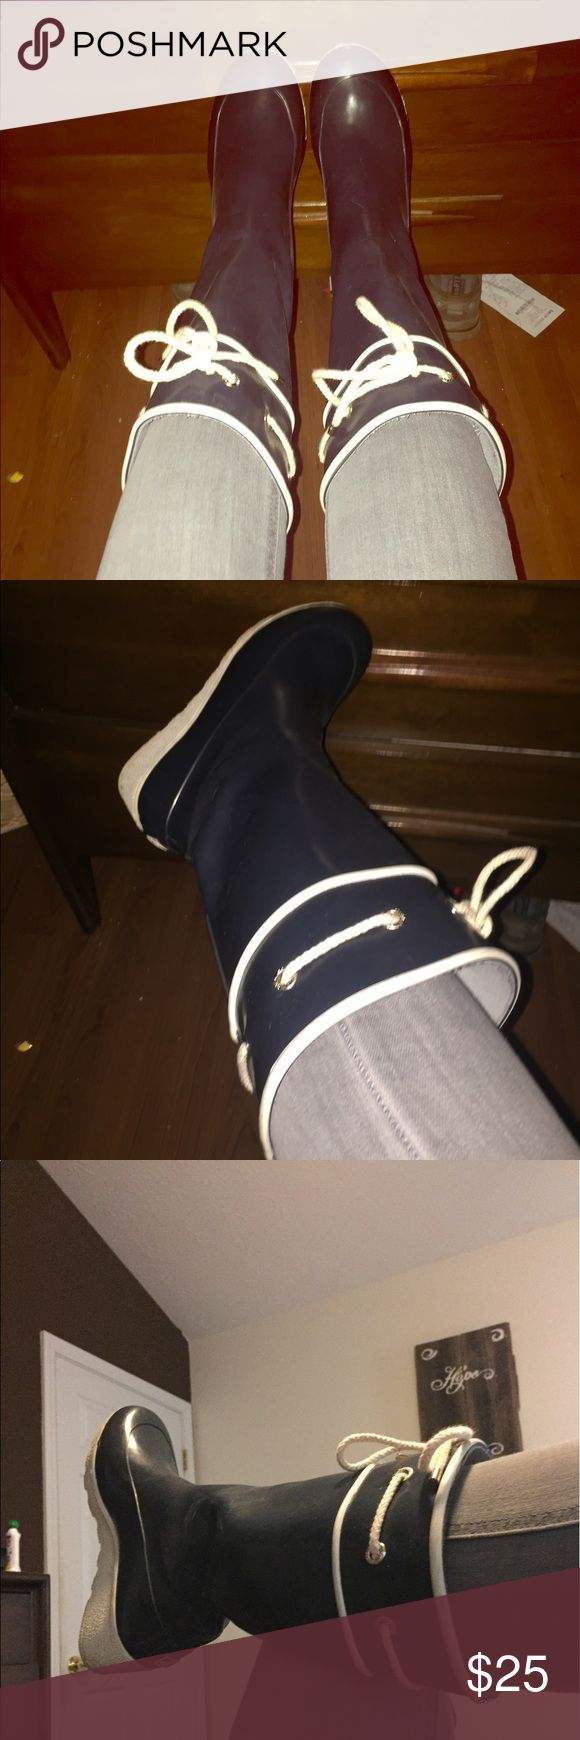 Navy blue Nautical Sperry wedge heel rain ☔️ boots These are adorable yet practical Navy Blue Sperry rain boots!  They have cream lace detailing around the top for looks and a cute, modest wedge heel.  Don't be afraid to wear these cuties on a rainy day and still be fashionable!  The inside is great and clean!  Comfy and fuzzy lined but not thick at all.  Very comfy for all day wear.  True to size 9.  A scrape or scuff here or there but years of life left.  High grade materials!  Will be…